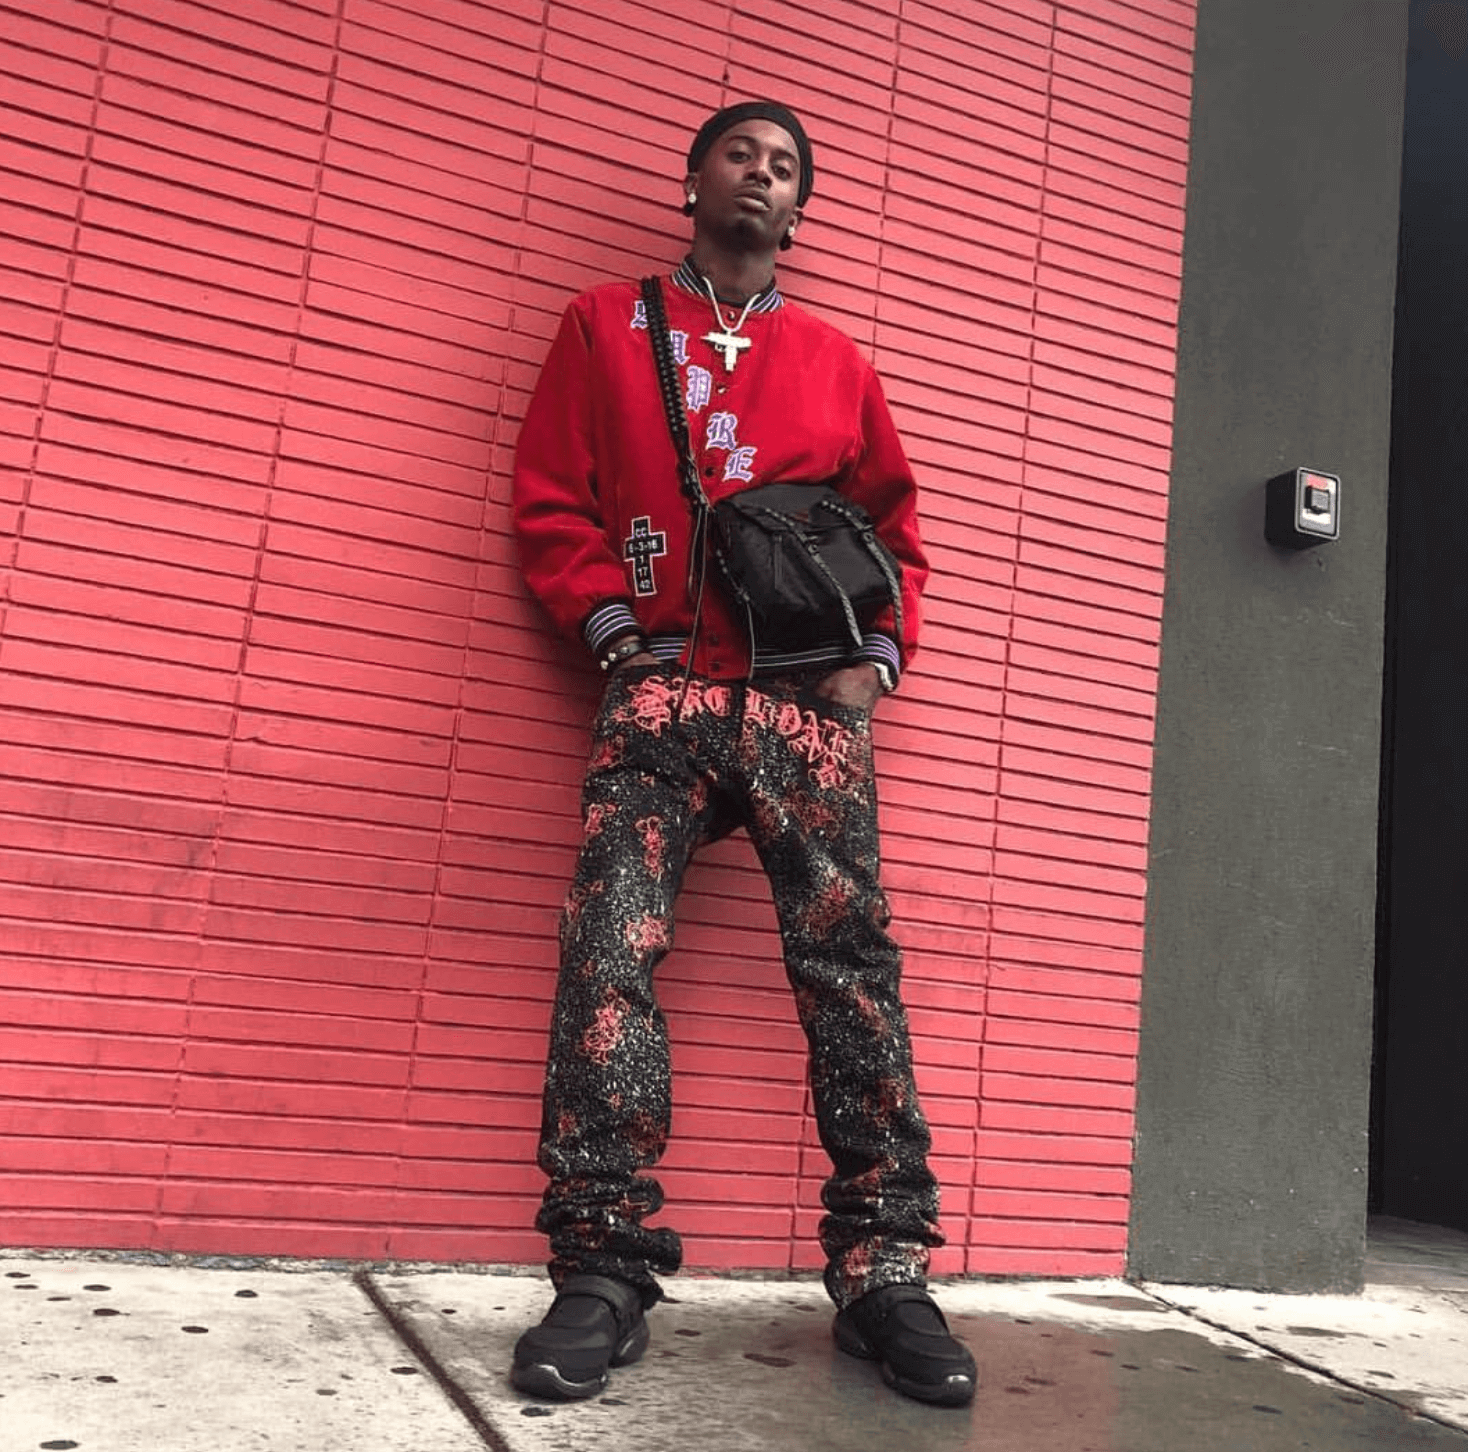 Playboi Carti in the Prada Sneakers